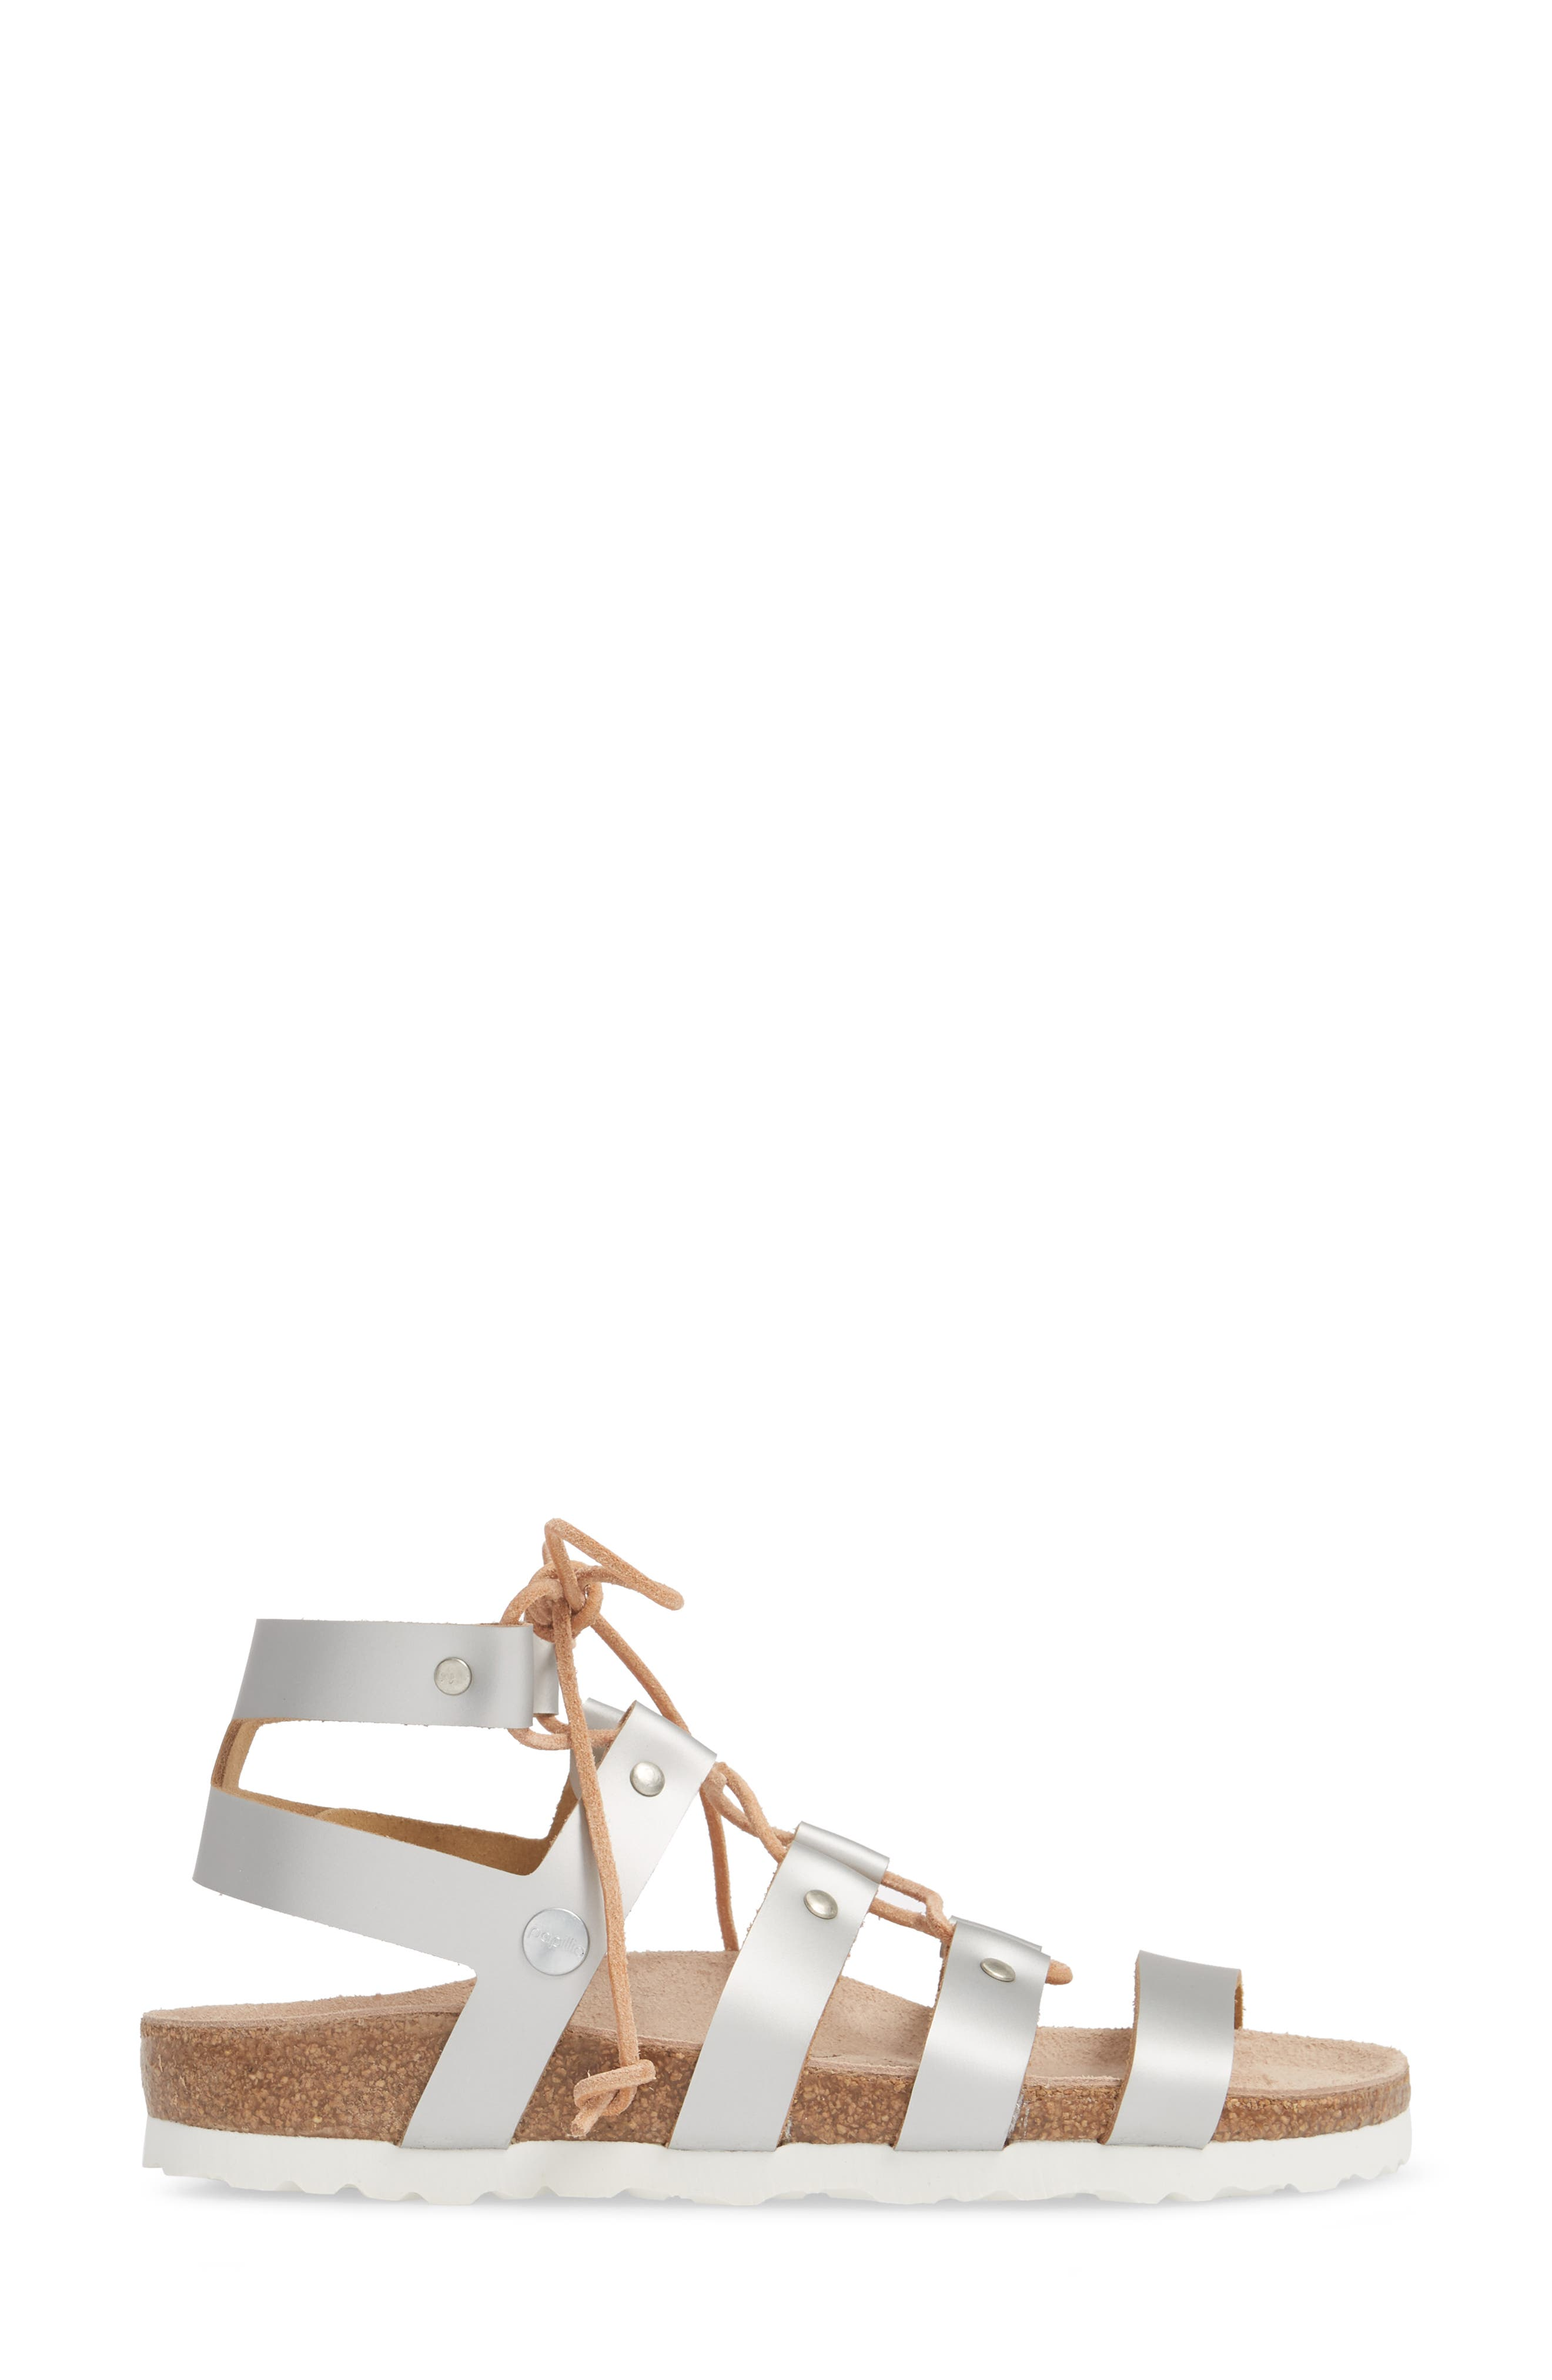 Papillio by Birkenstock Cleo Gladiator Sandal,                             Alternate thumbnail 3, color,                             Frosted Silver Leather